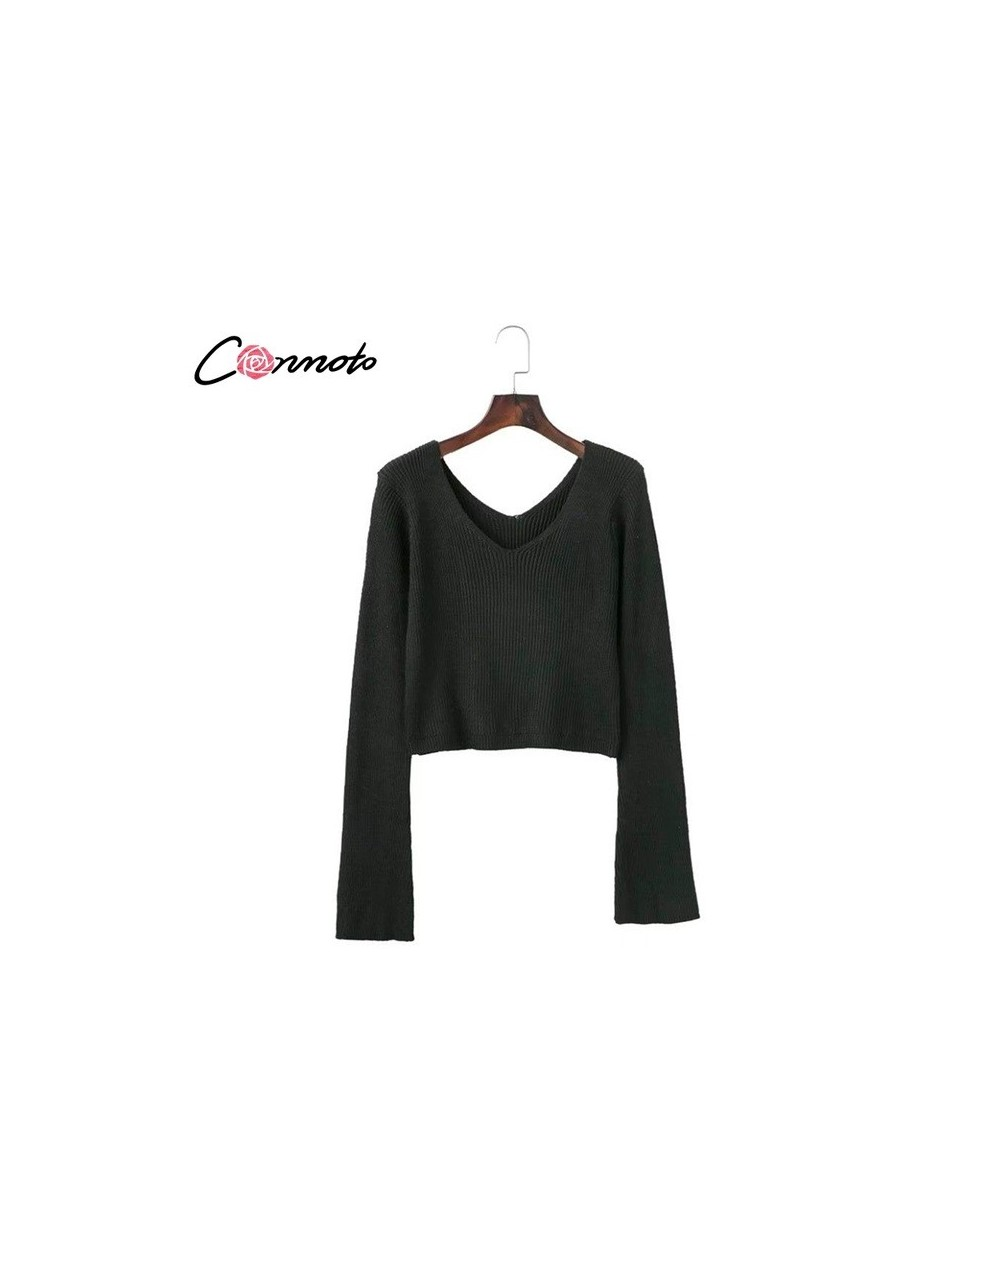 Sexy V-neck Women Sweater Black Flare Sleeve Pullover 2018 Autumn Winter Jumper Knit Outerwear Female - Black - 473909273523-1